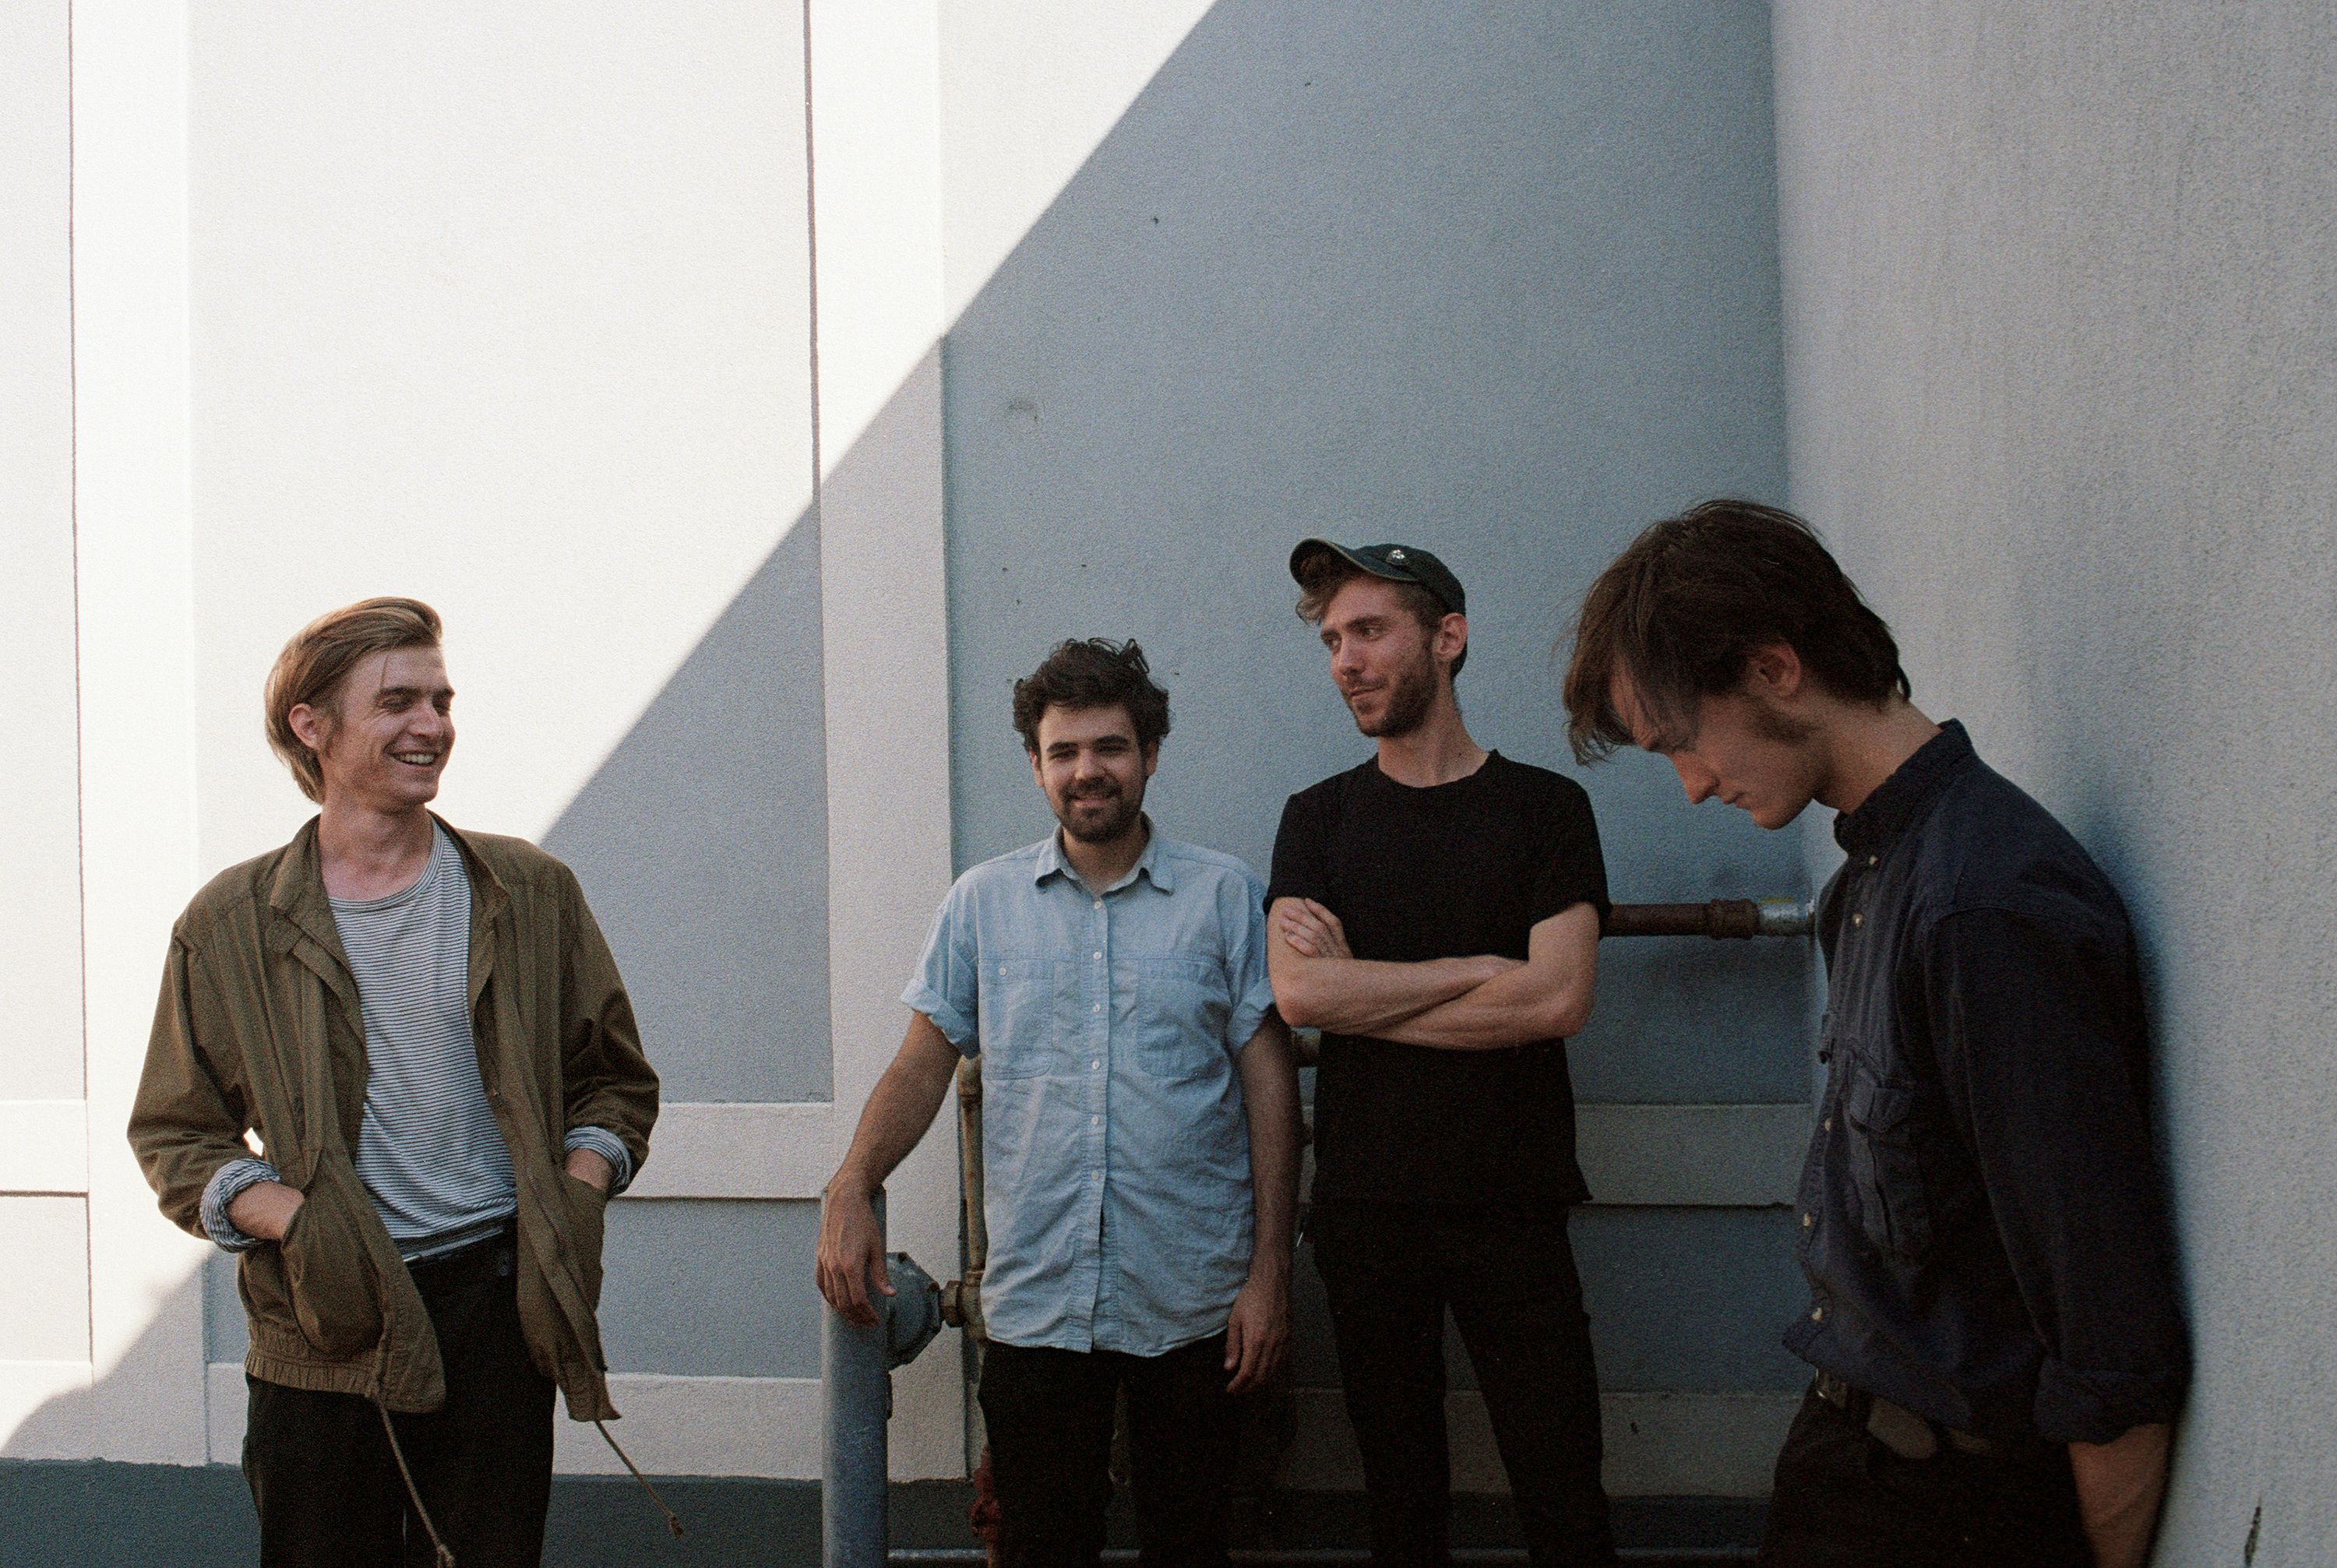 Ought © Colin Medley